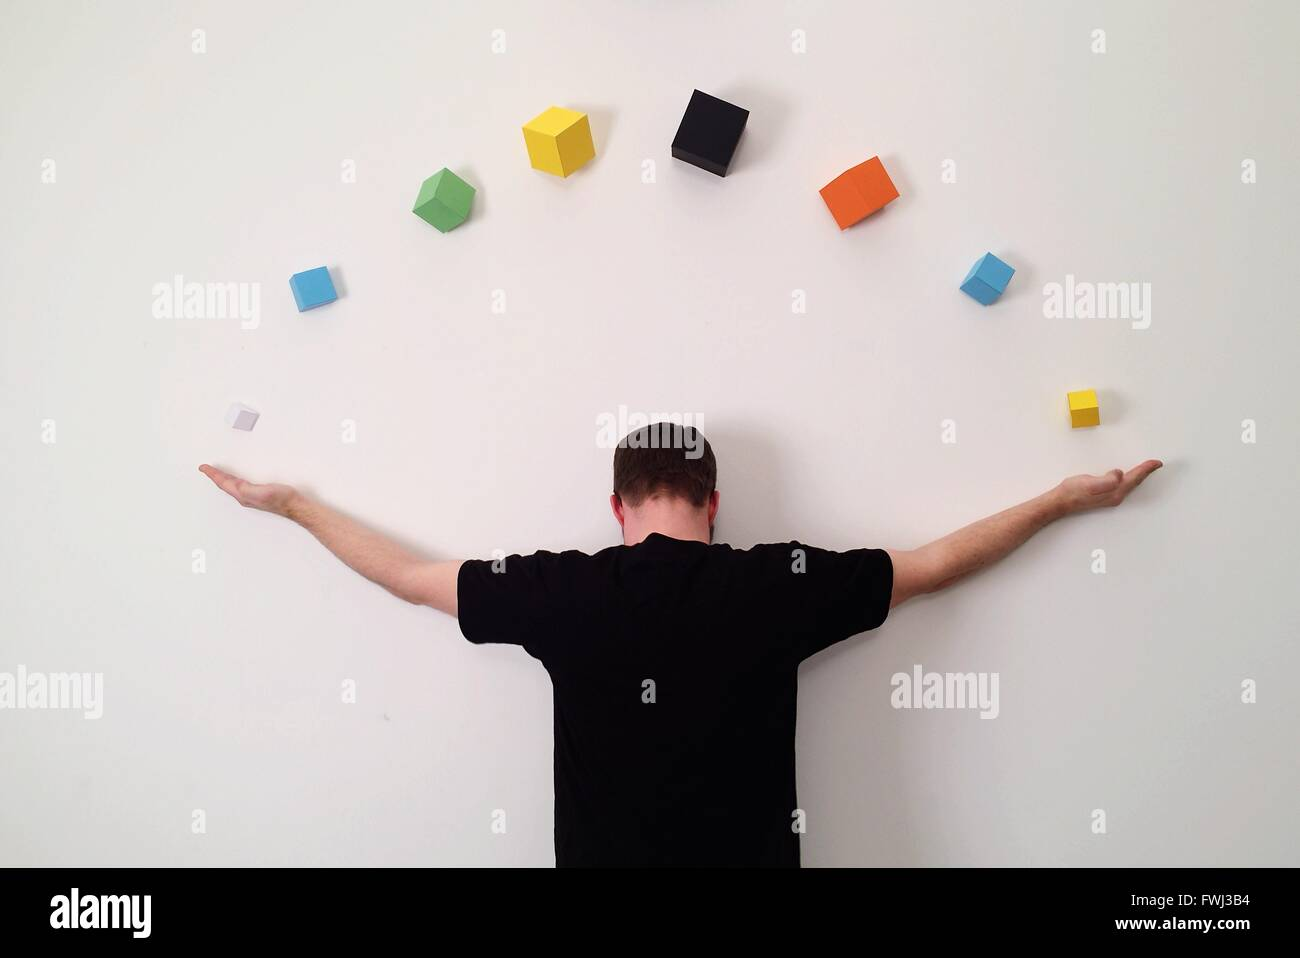 Rear View Of Man Stretching Arms On Wall With Colorful Cubes - Stock Image